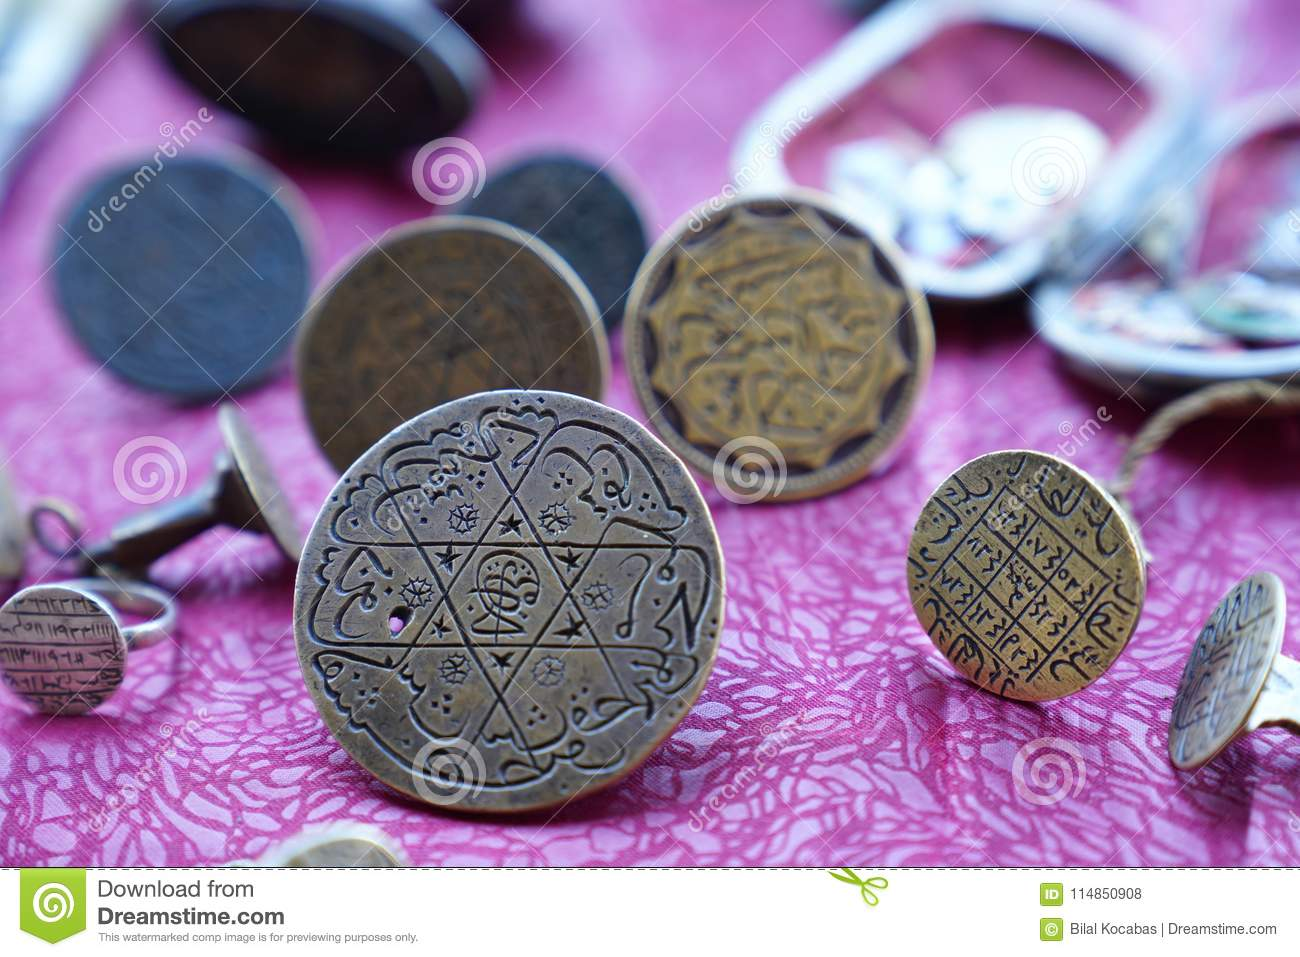 Ottoman Turkish stampers with Arabic letters in flea market